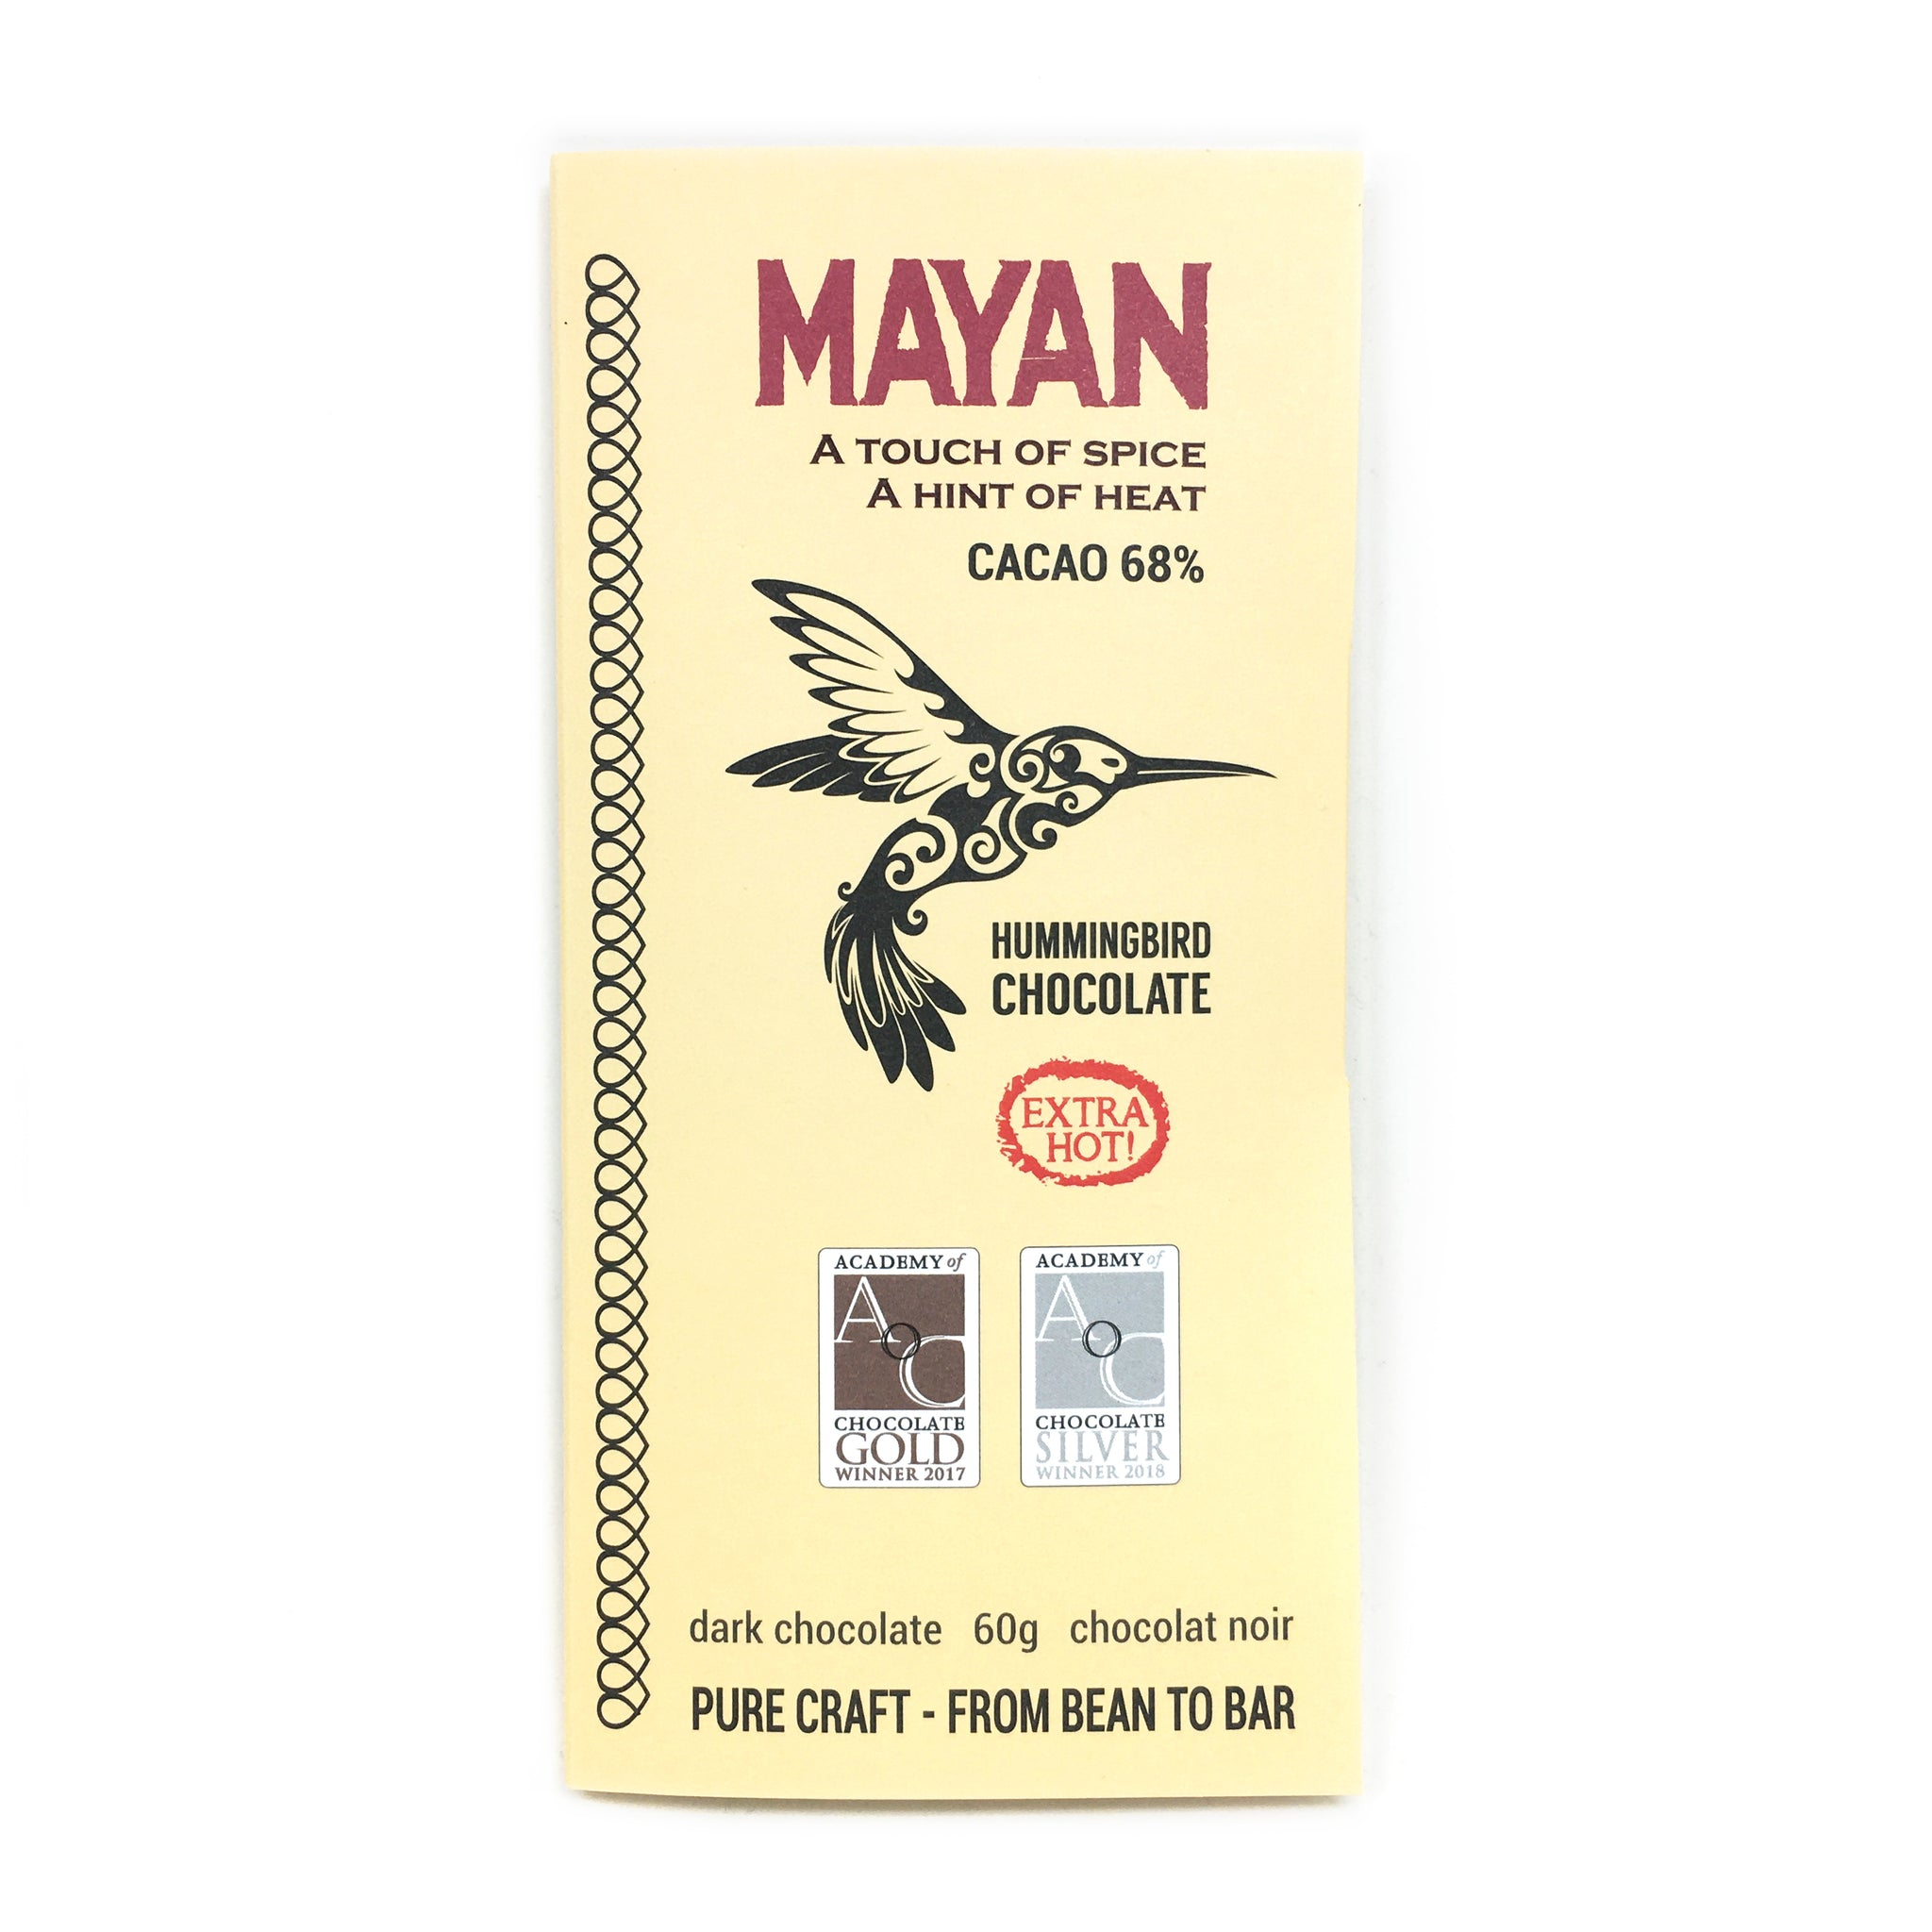 EXTRA HOT Mayan 68% - Special Edition